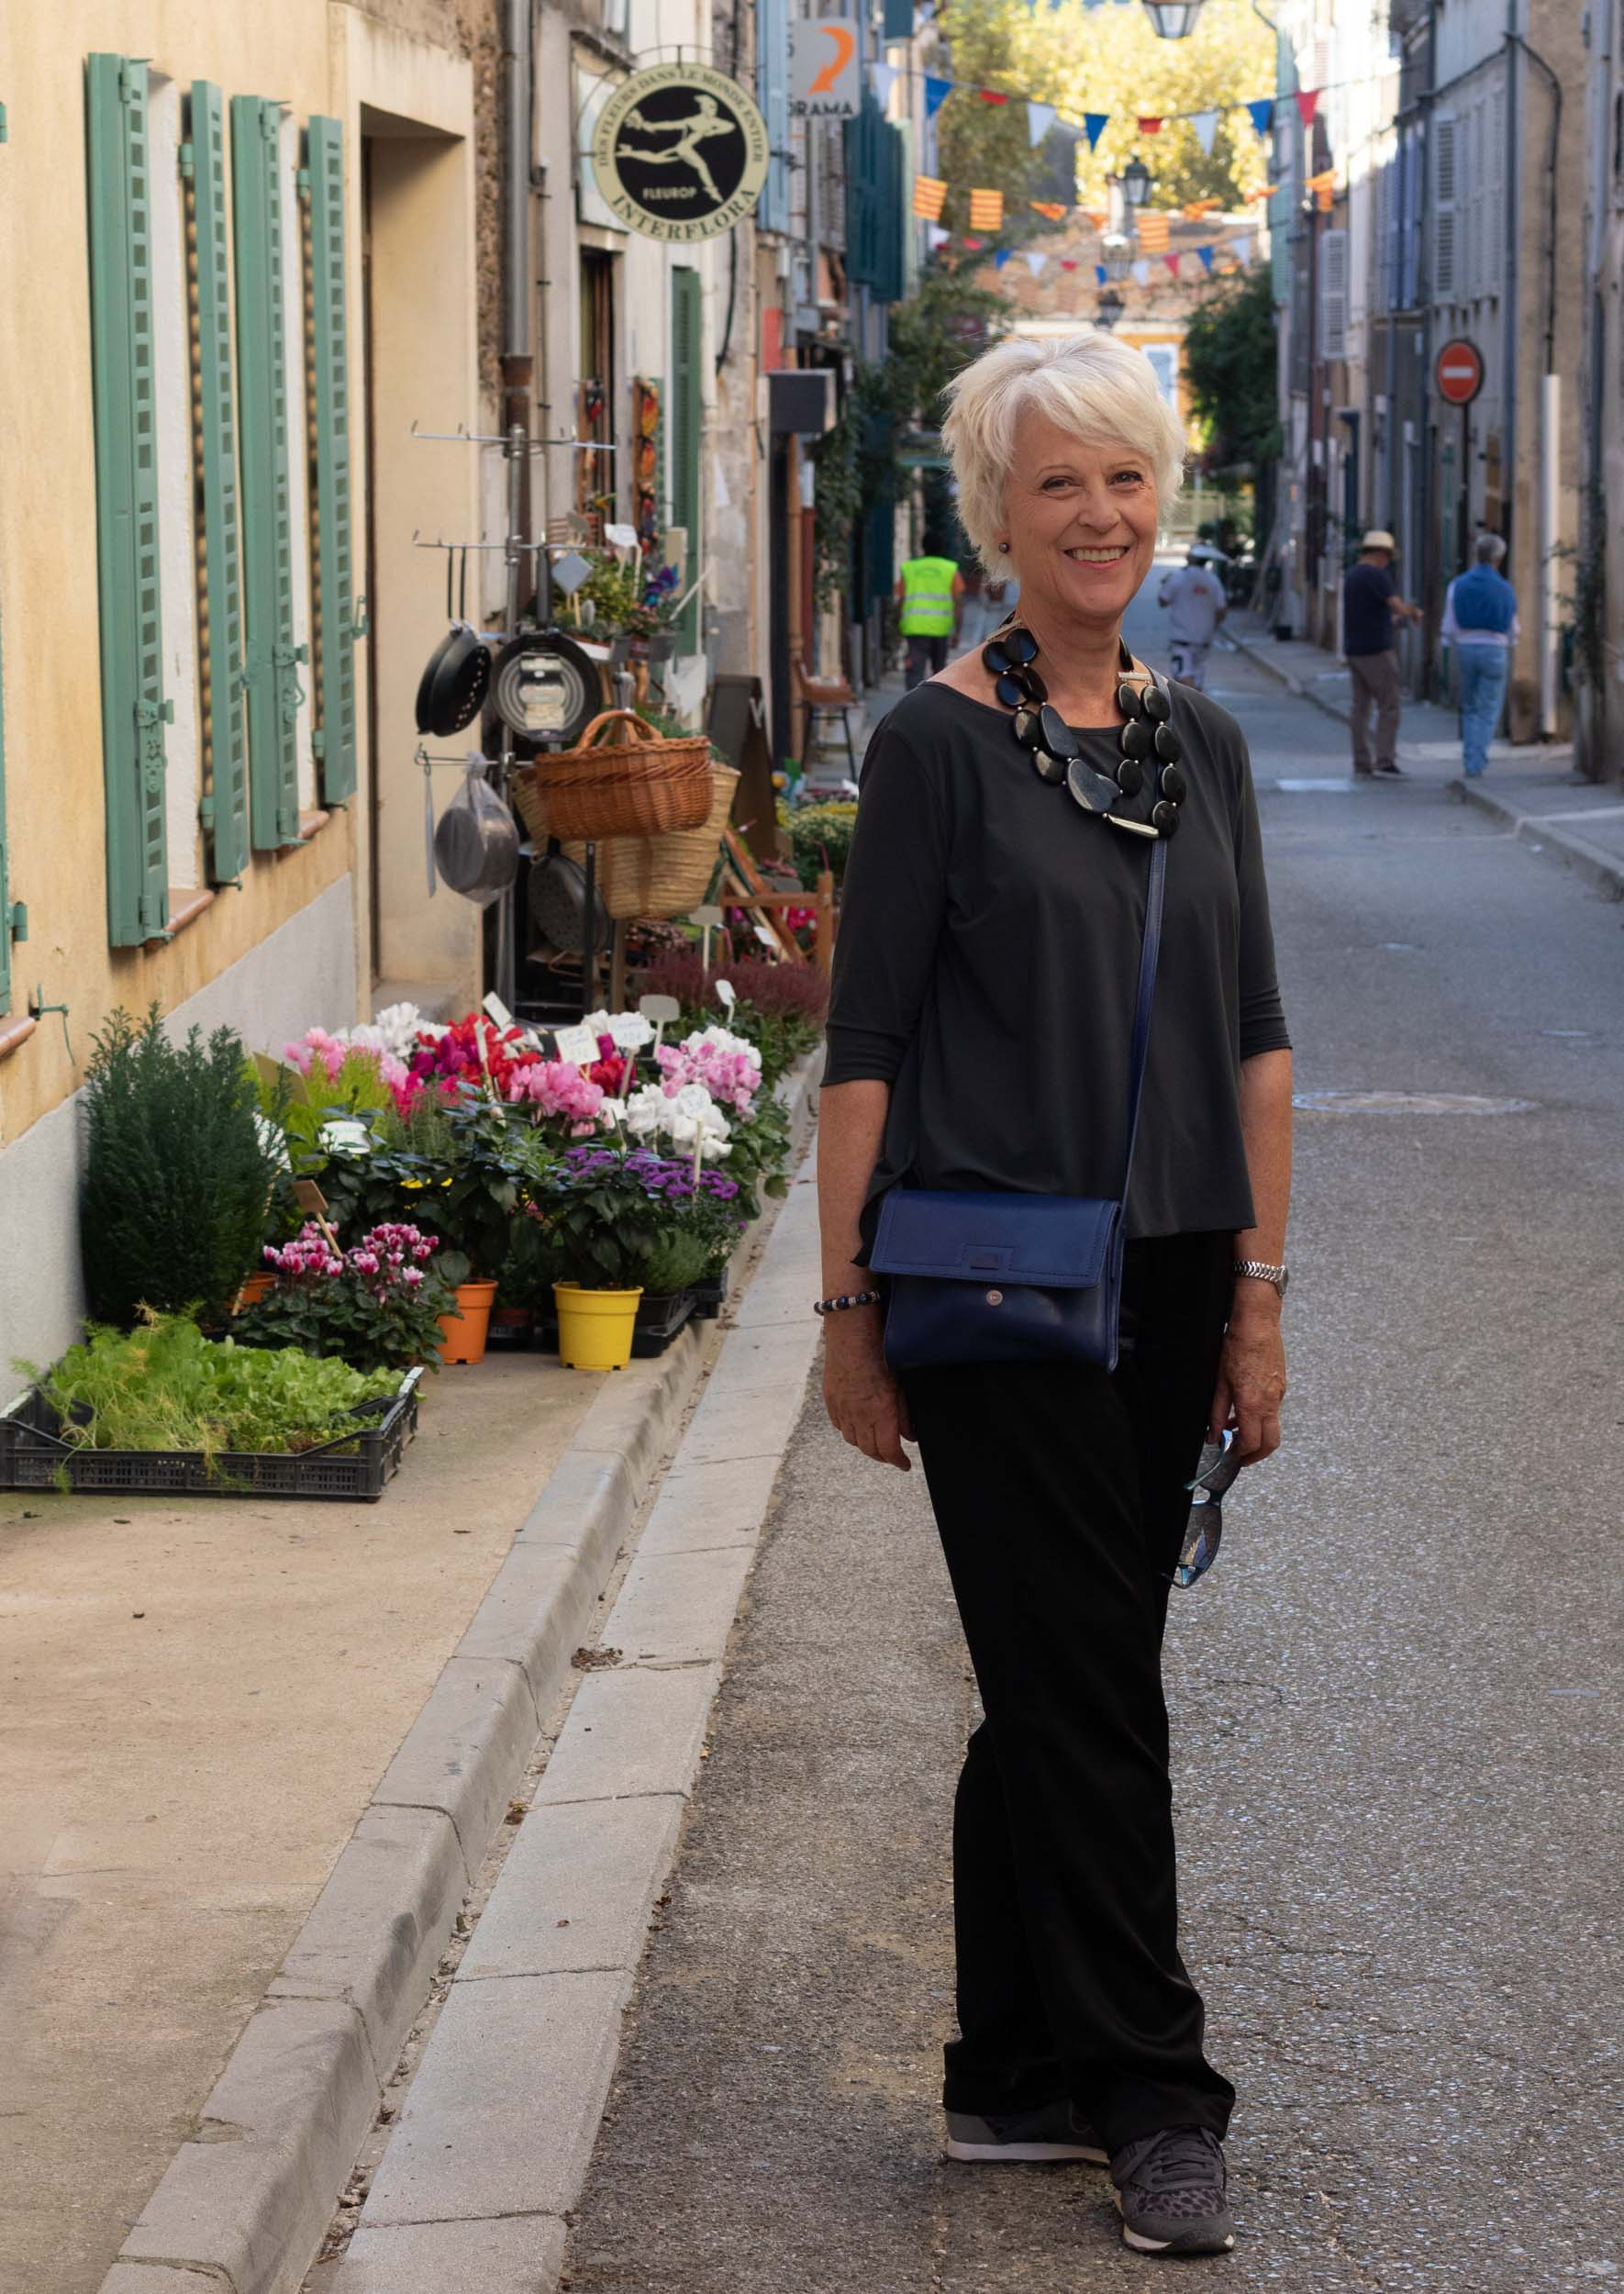 A visit to Collobrières in the Var